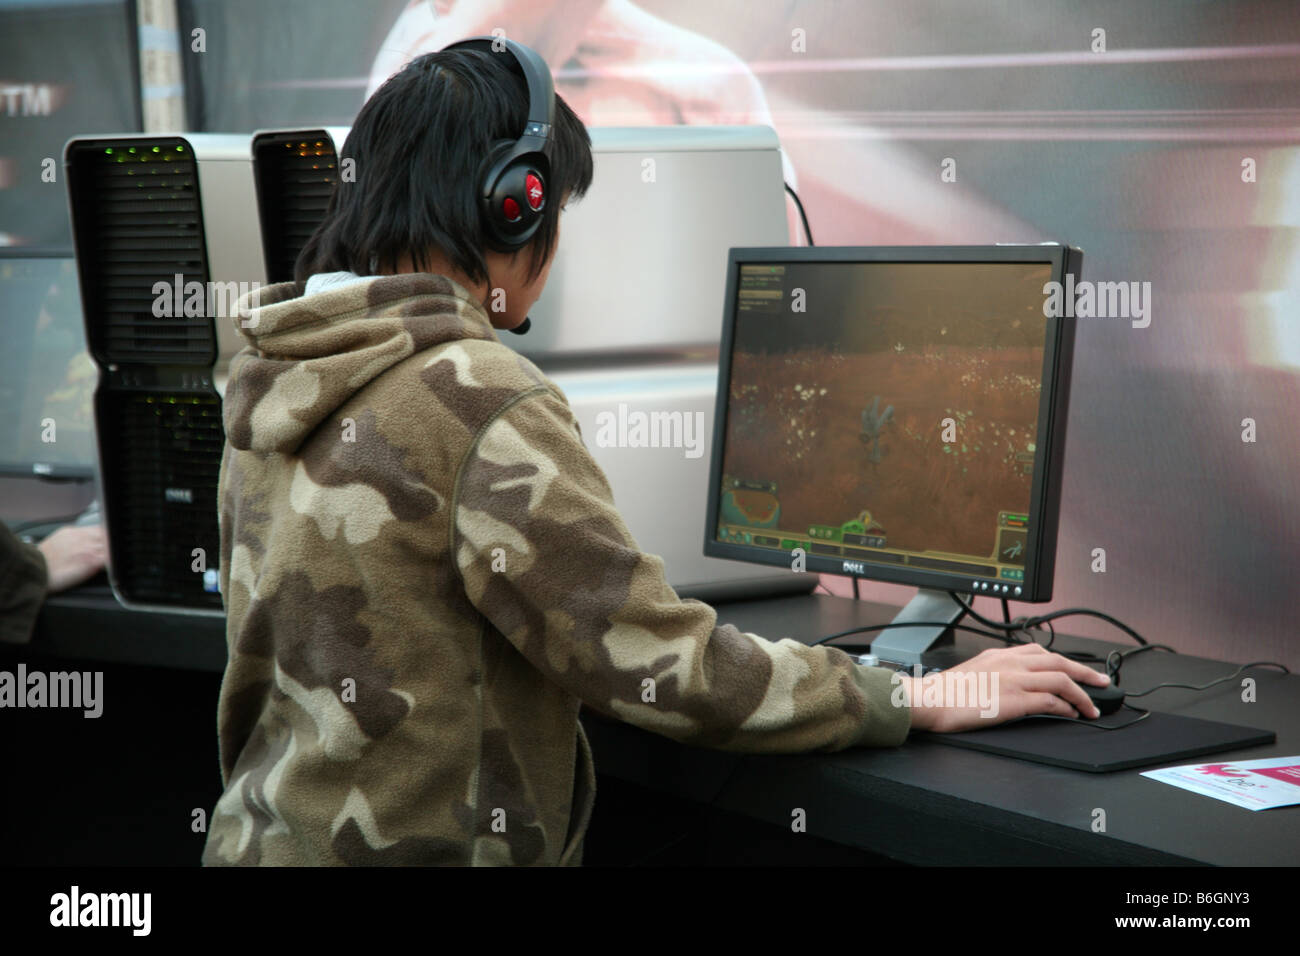 Boy playing computer game at London games show - Stock Image